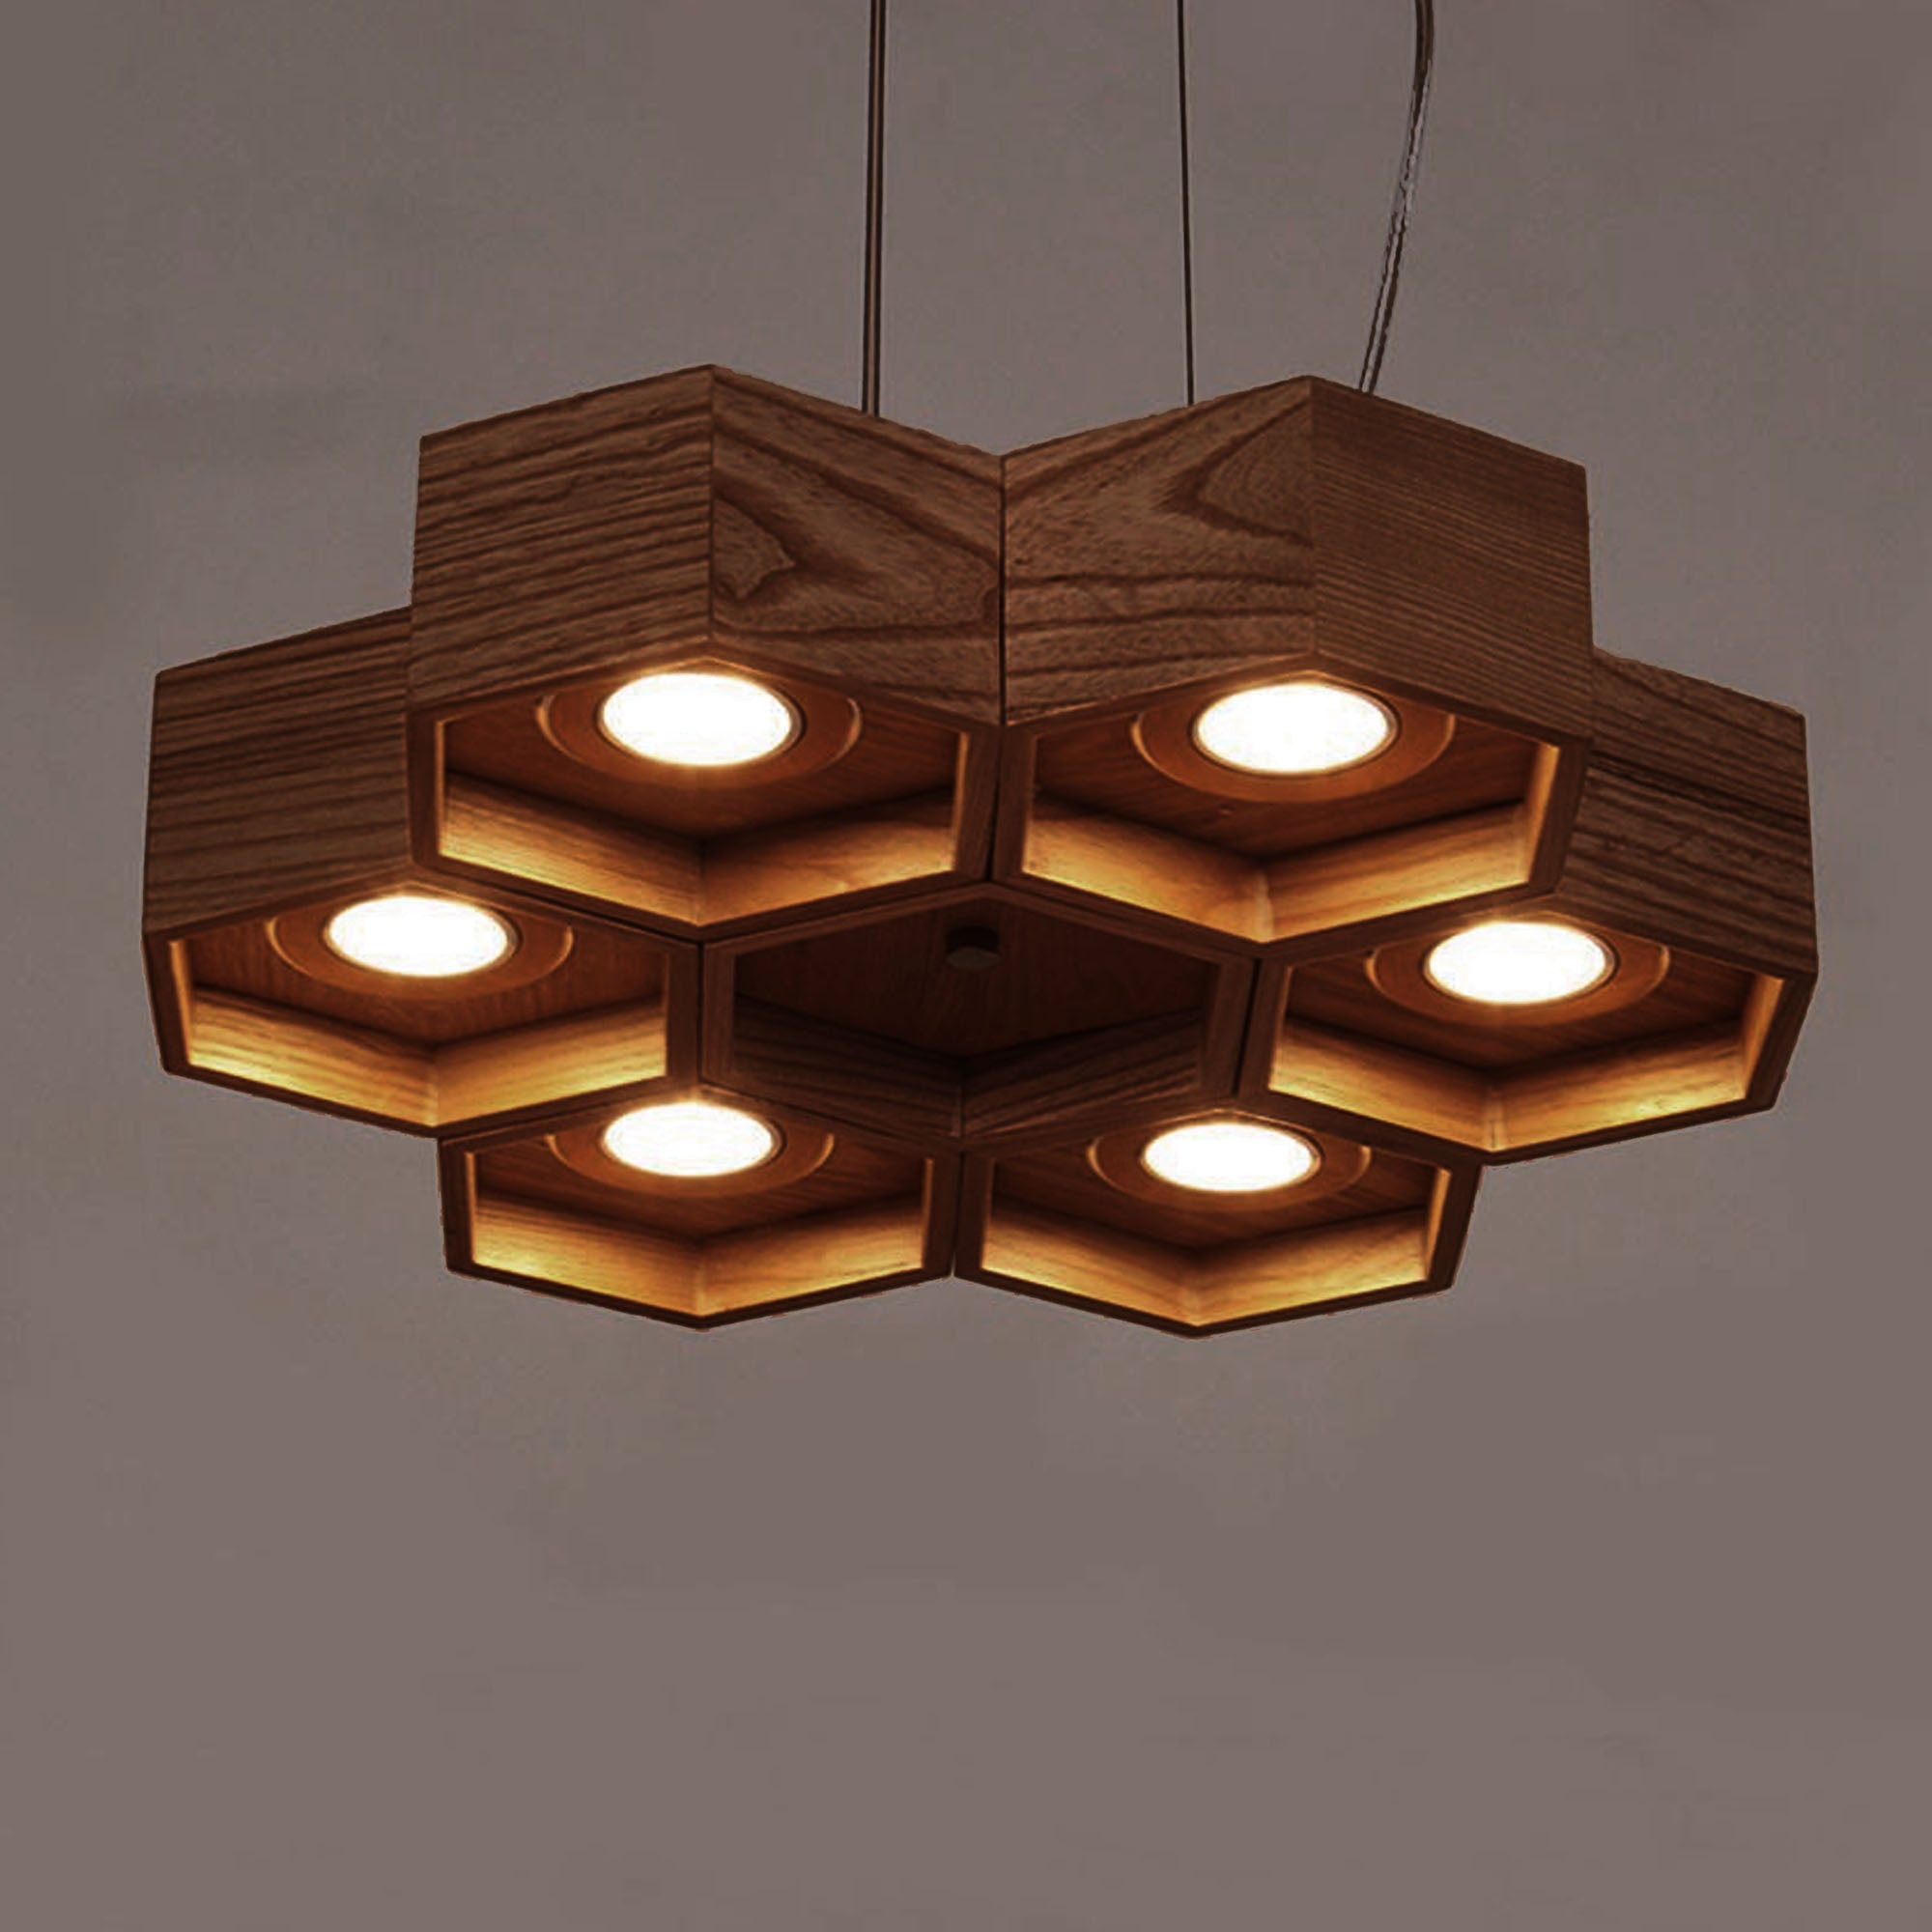 Honeycomb Solid Wood Pendant Lamp with LED Bulbs BPMT26-W